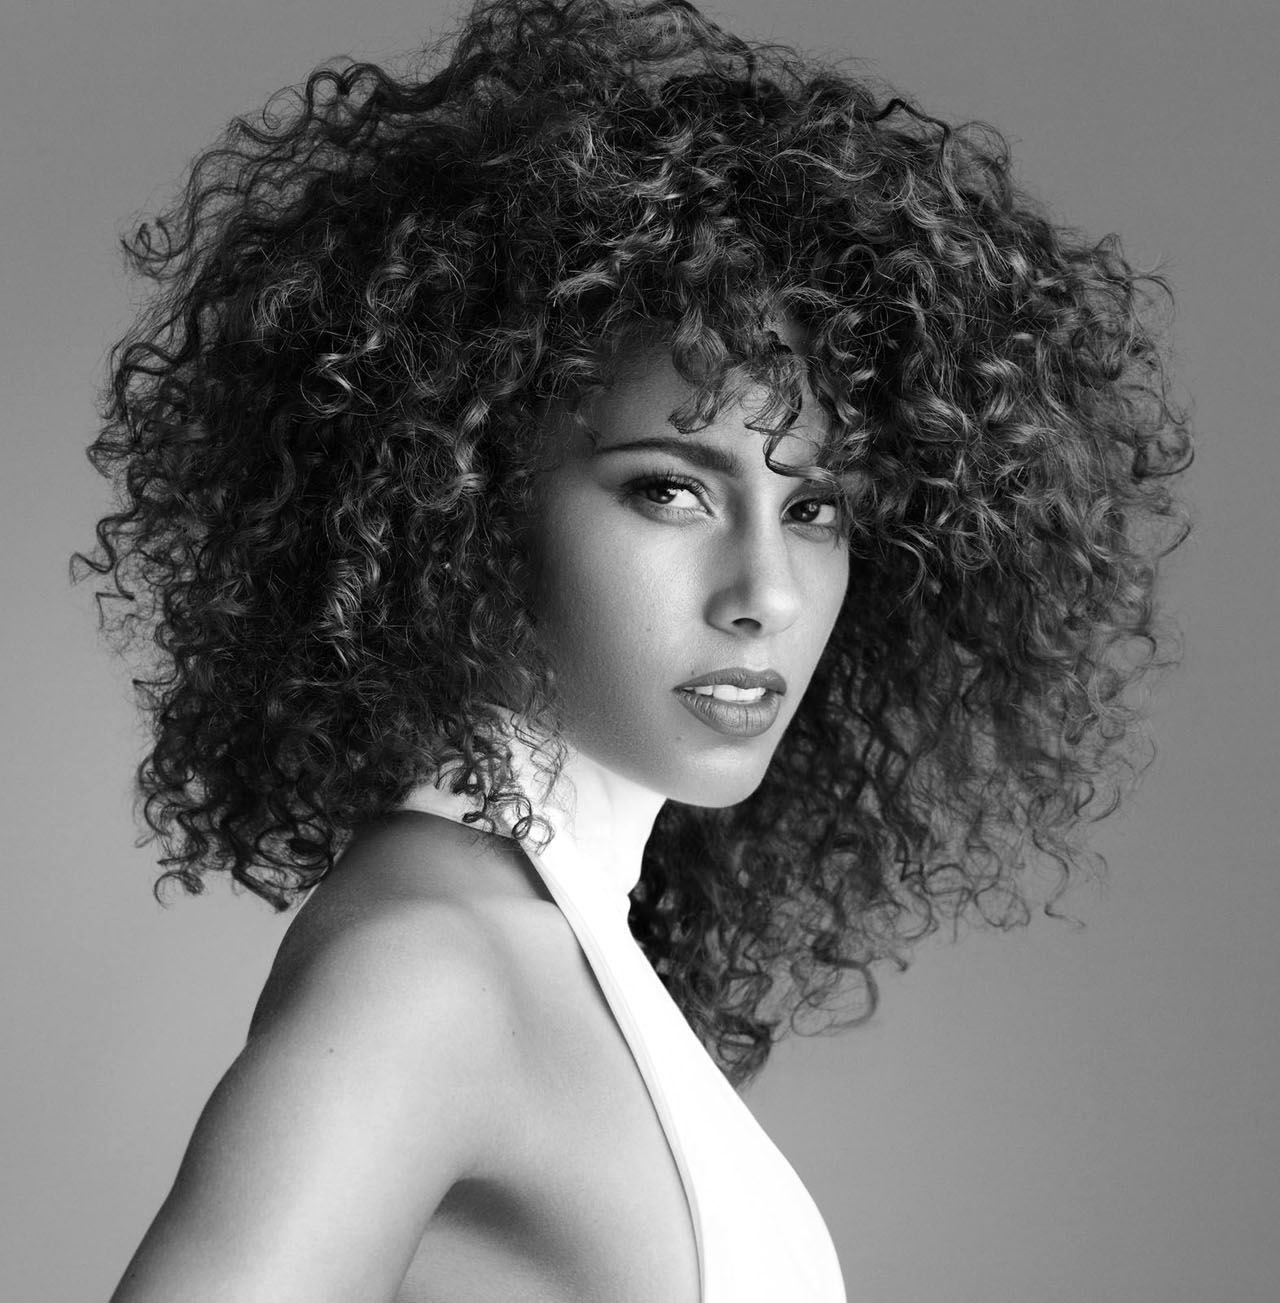 alicia...looking fierce with her natural curls